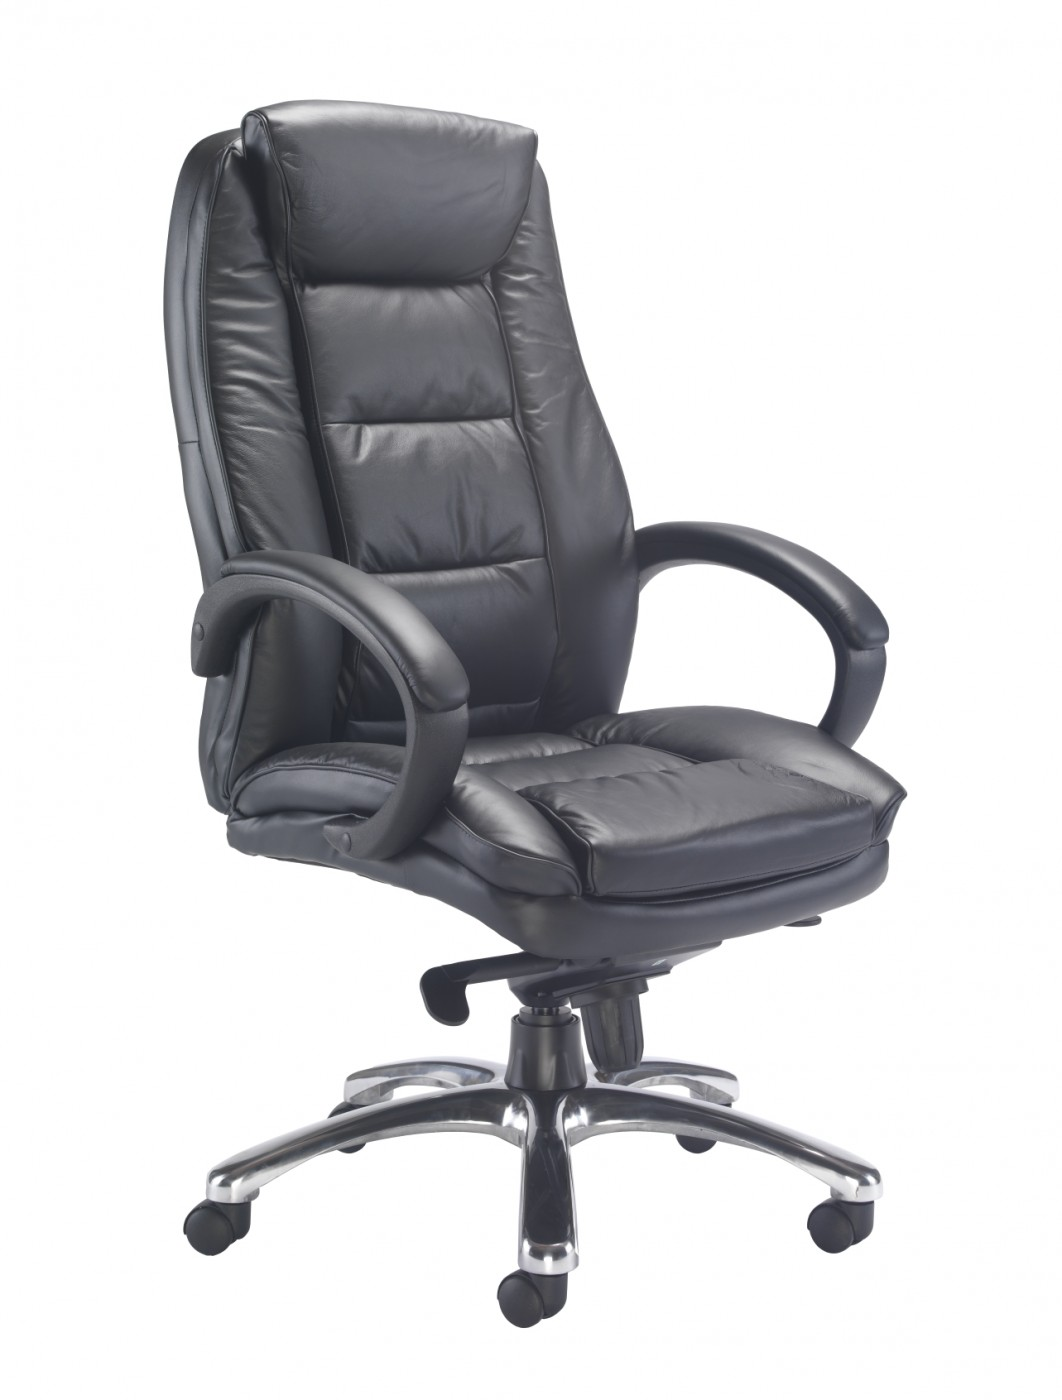 Office Chairs - TC Montana Executive Leather Office Chair ...